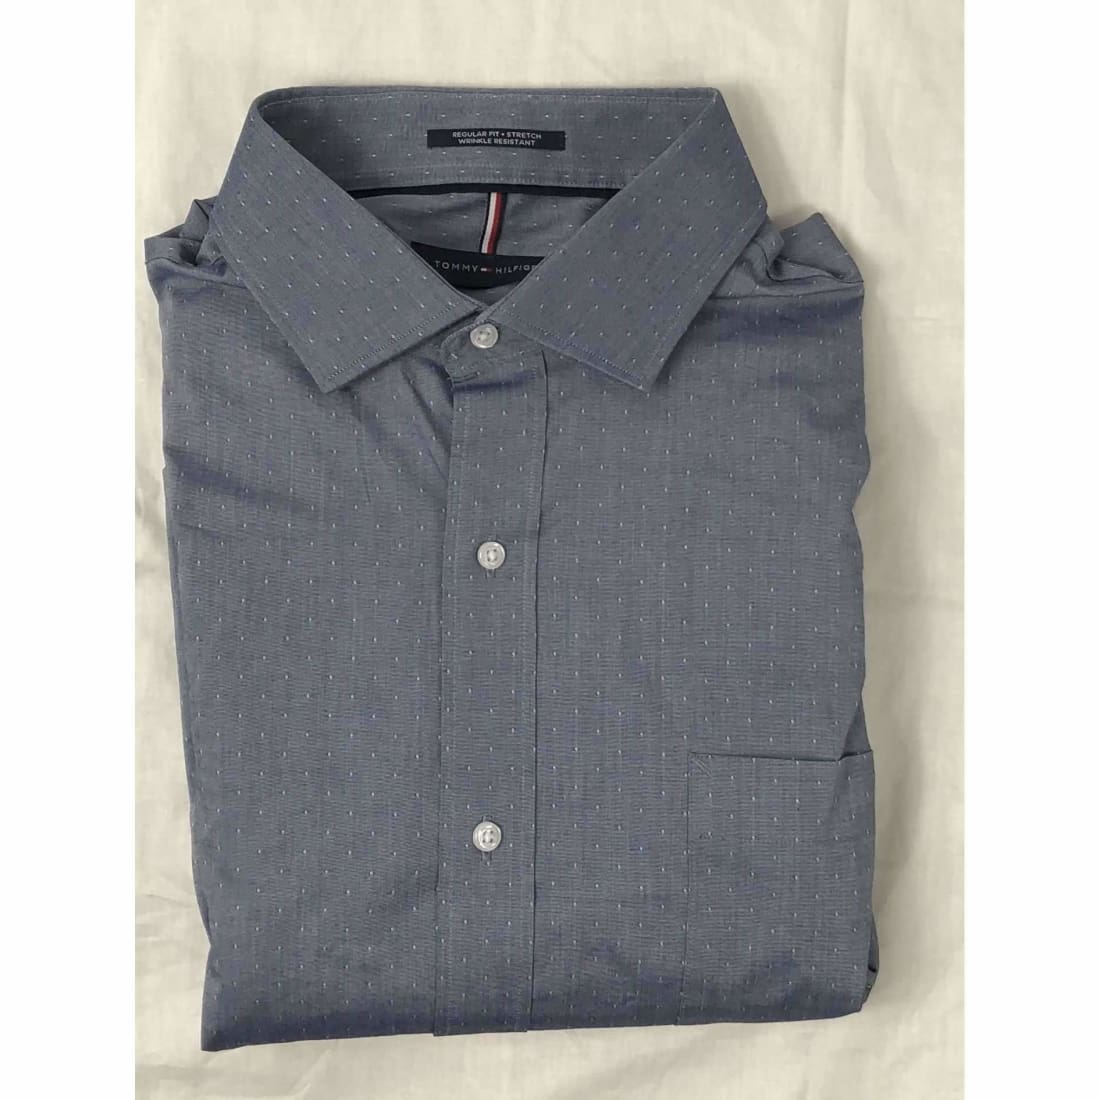 Tommy Hilfiger Regular Fit Button Front Dress Shirt Xl / Indigo / 34-35 Dress Shirts